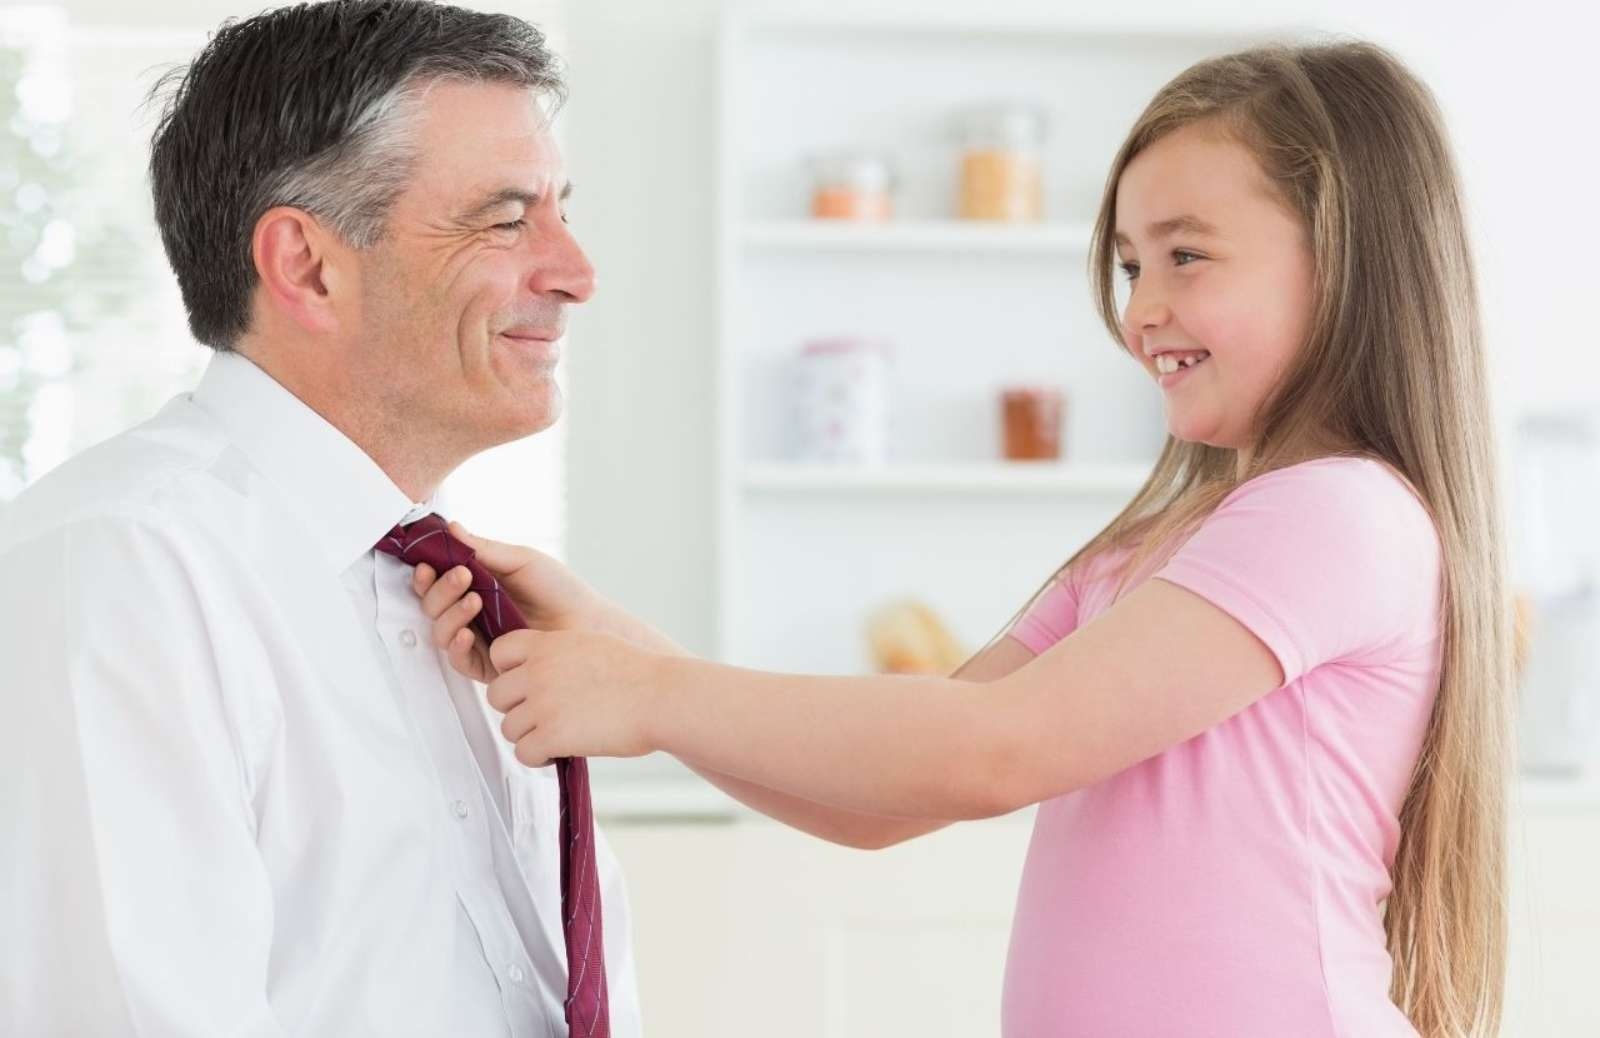 Professional man smiling while young daughter ties his tie